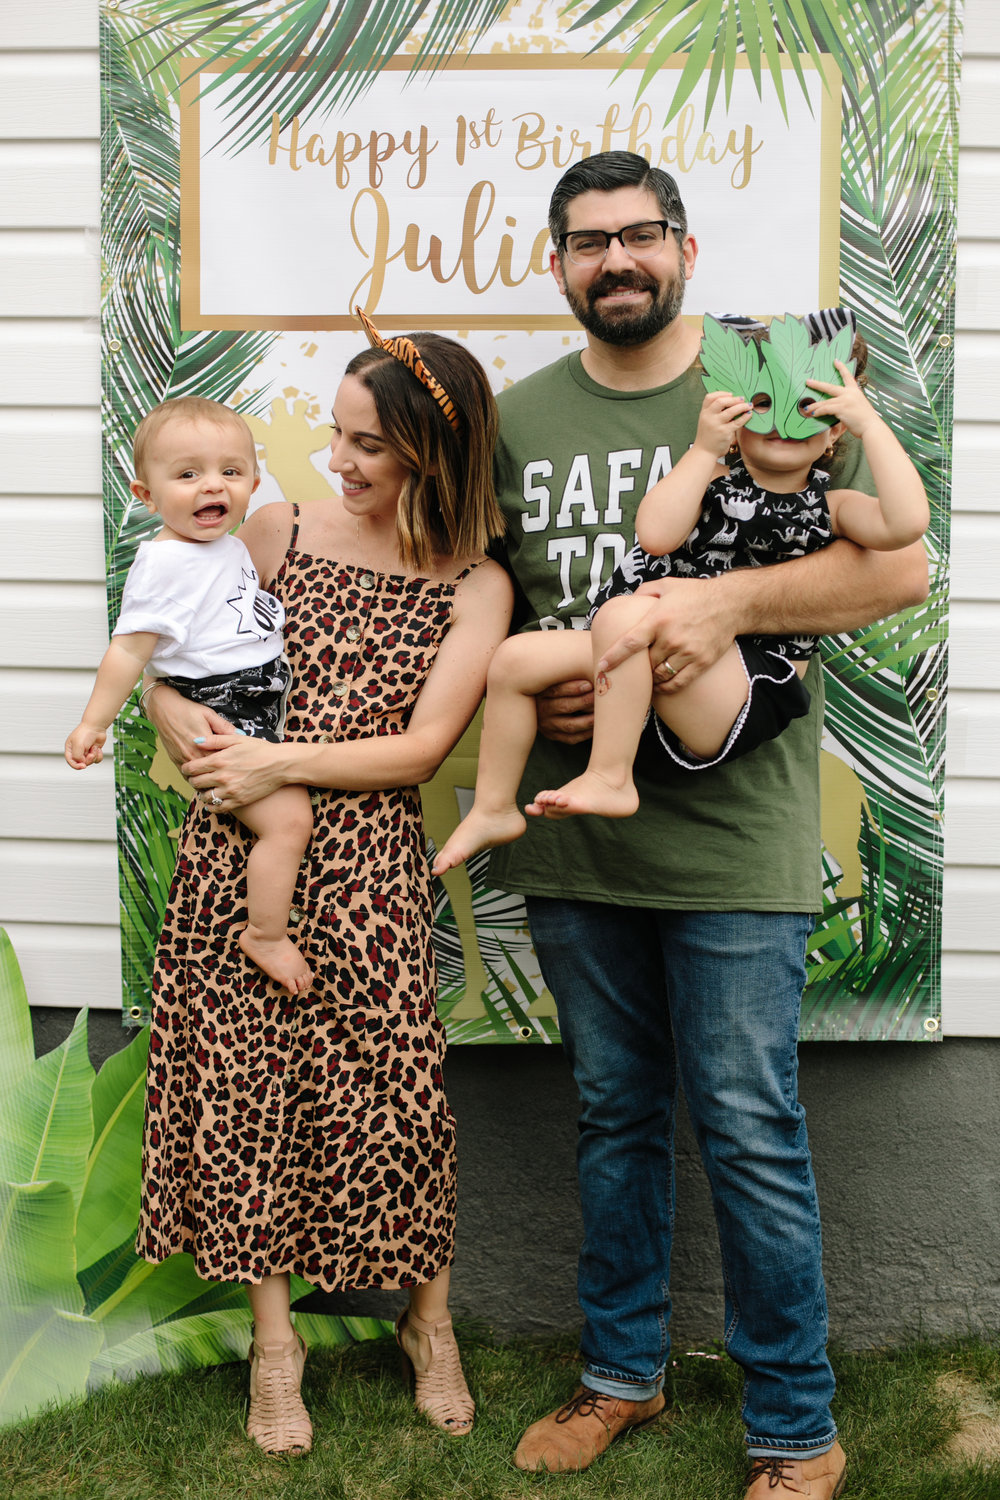 AngelaDatreEvents_JulianFirstBirthday_090118-48.jpg